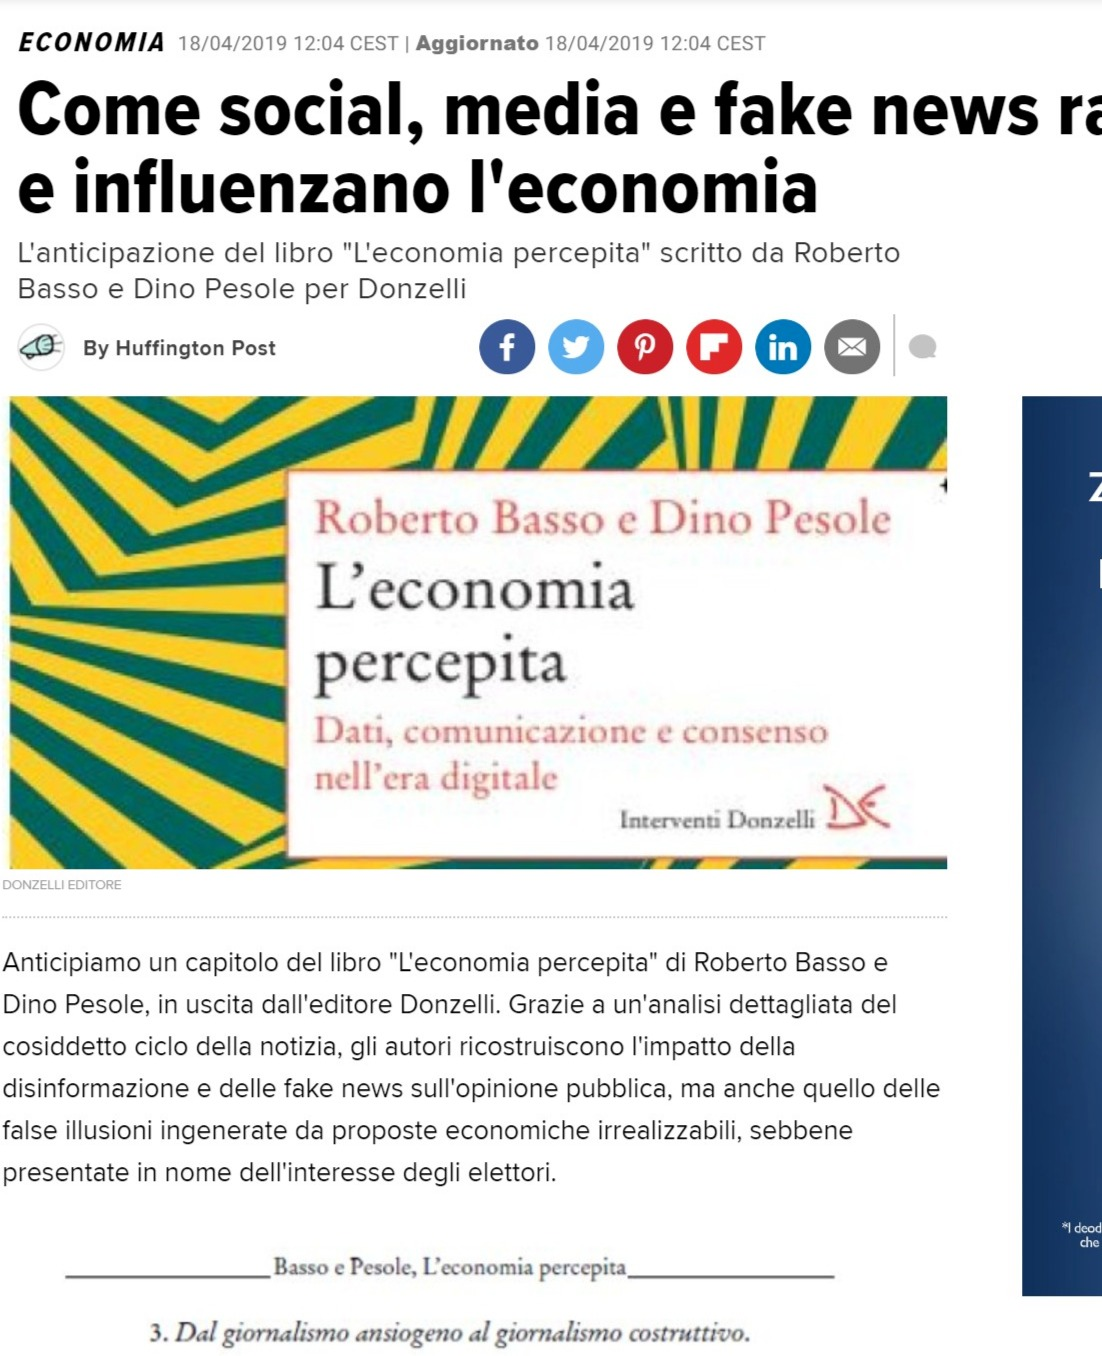 Screenshot of Come social, media e fake news raccontano e influenzano l'economia _ L'Huffington Post